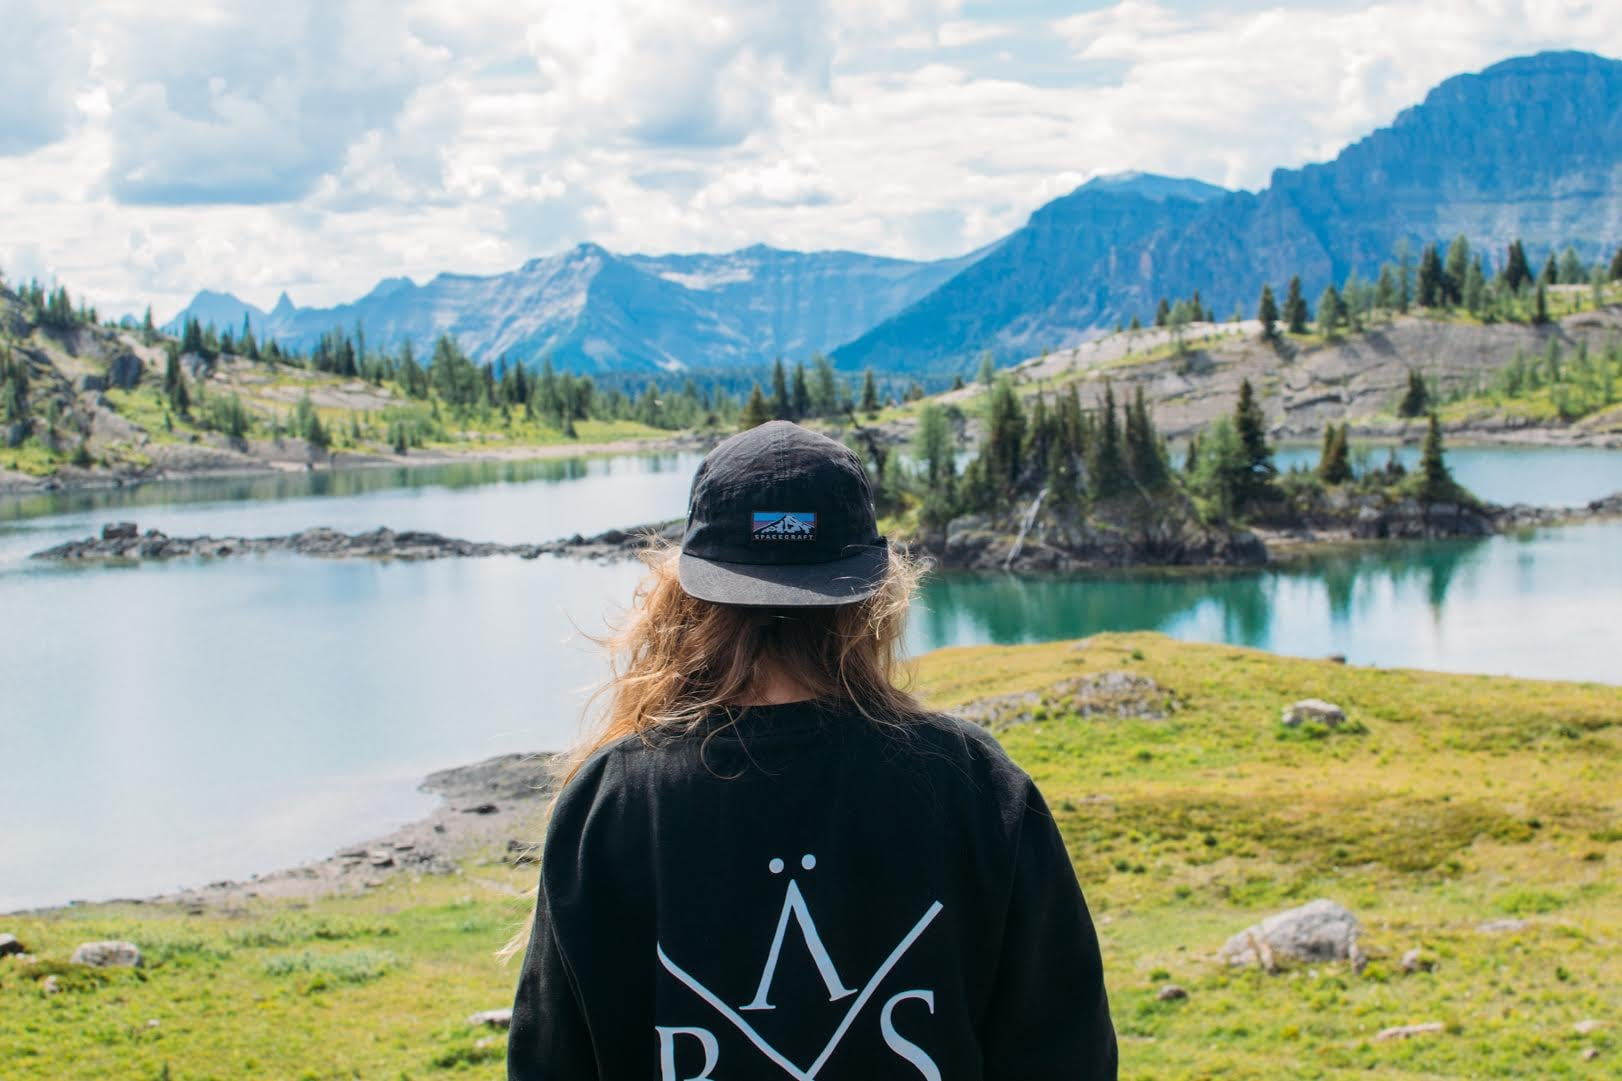 Billie hiking the Sunshine Meadows in, you guessed it, Canada.